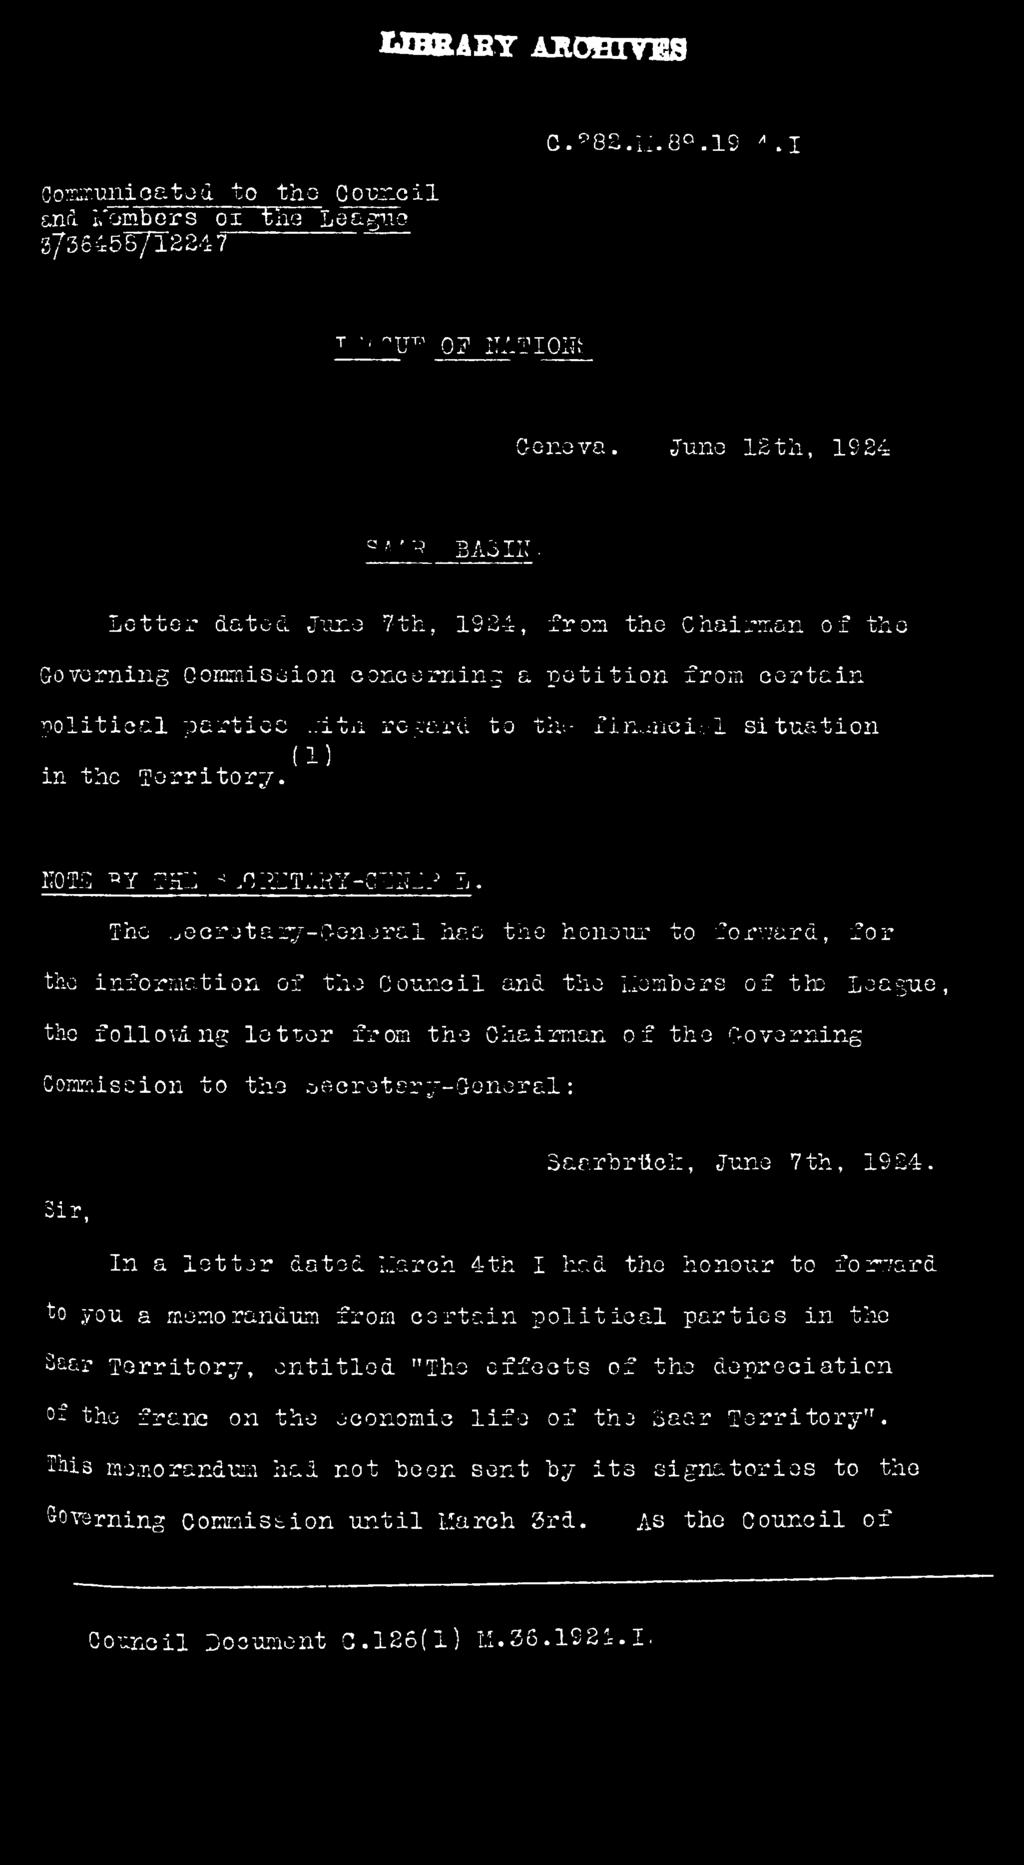 T 5 A X T T T i j - c L O j _ l v L e tte r dated June 7th, 1924, from the Chairman o f the Governing Commission concerning a p e t i t i o n from c e r ta in p o litic a l p a r tie s,:ita reg ard